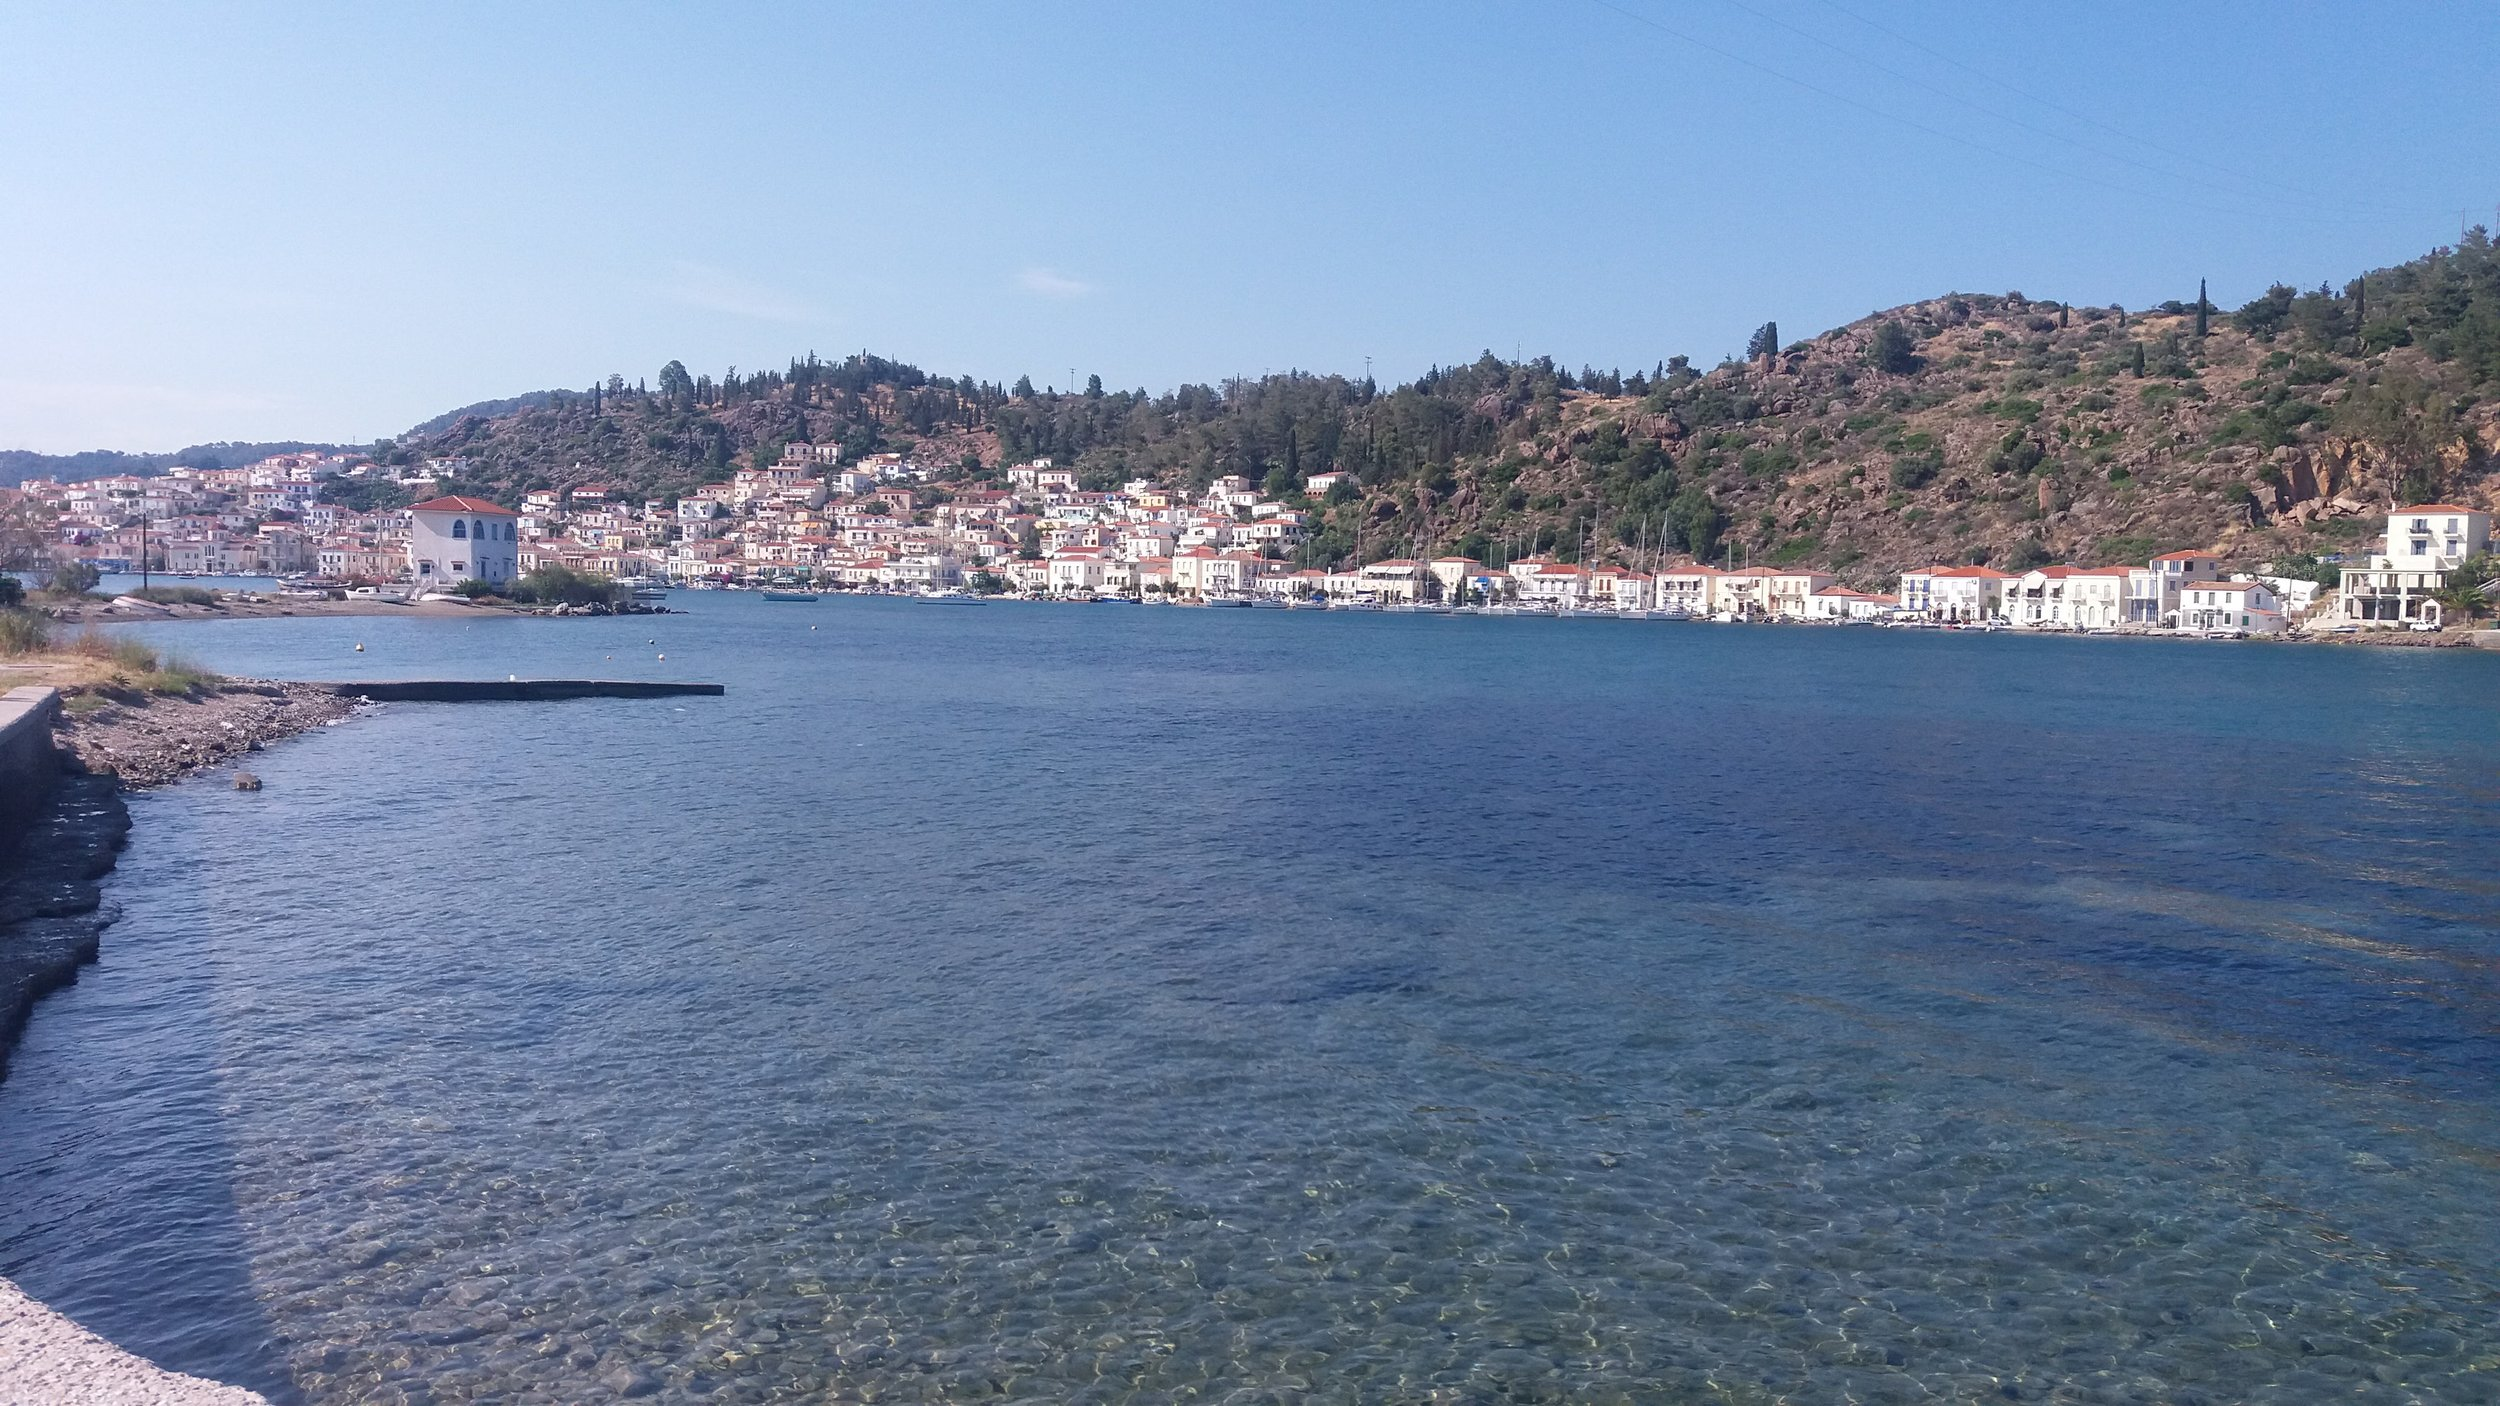 Looking at the island of Poros from the mainland. This is a very short ferry ride.